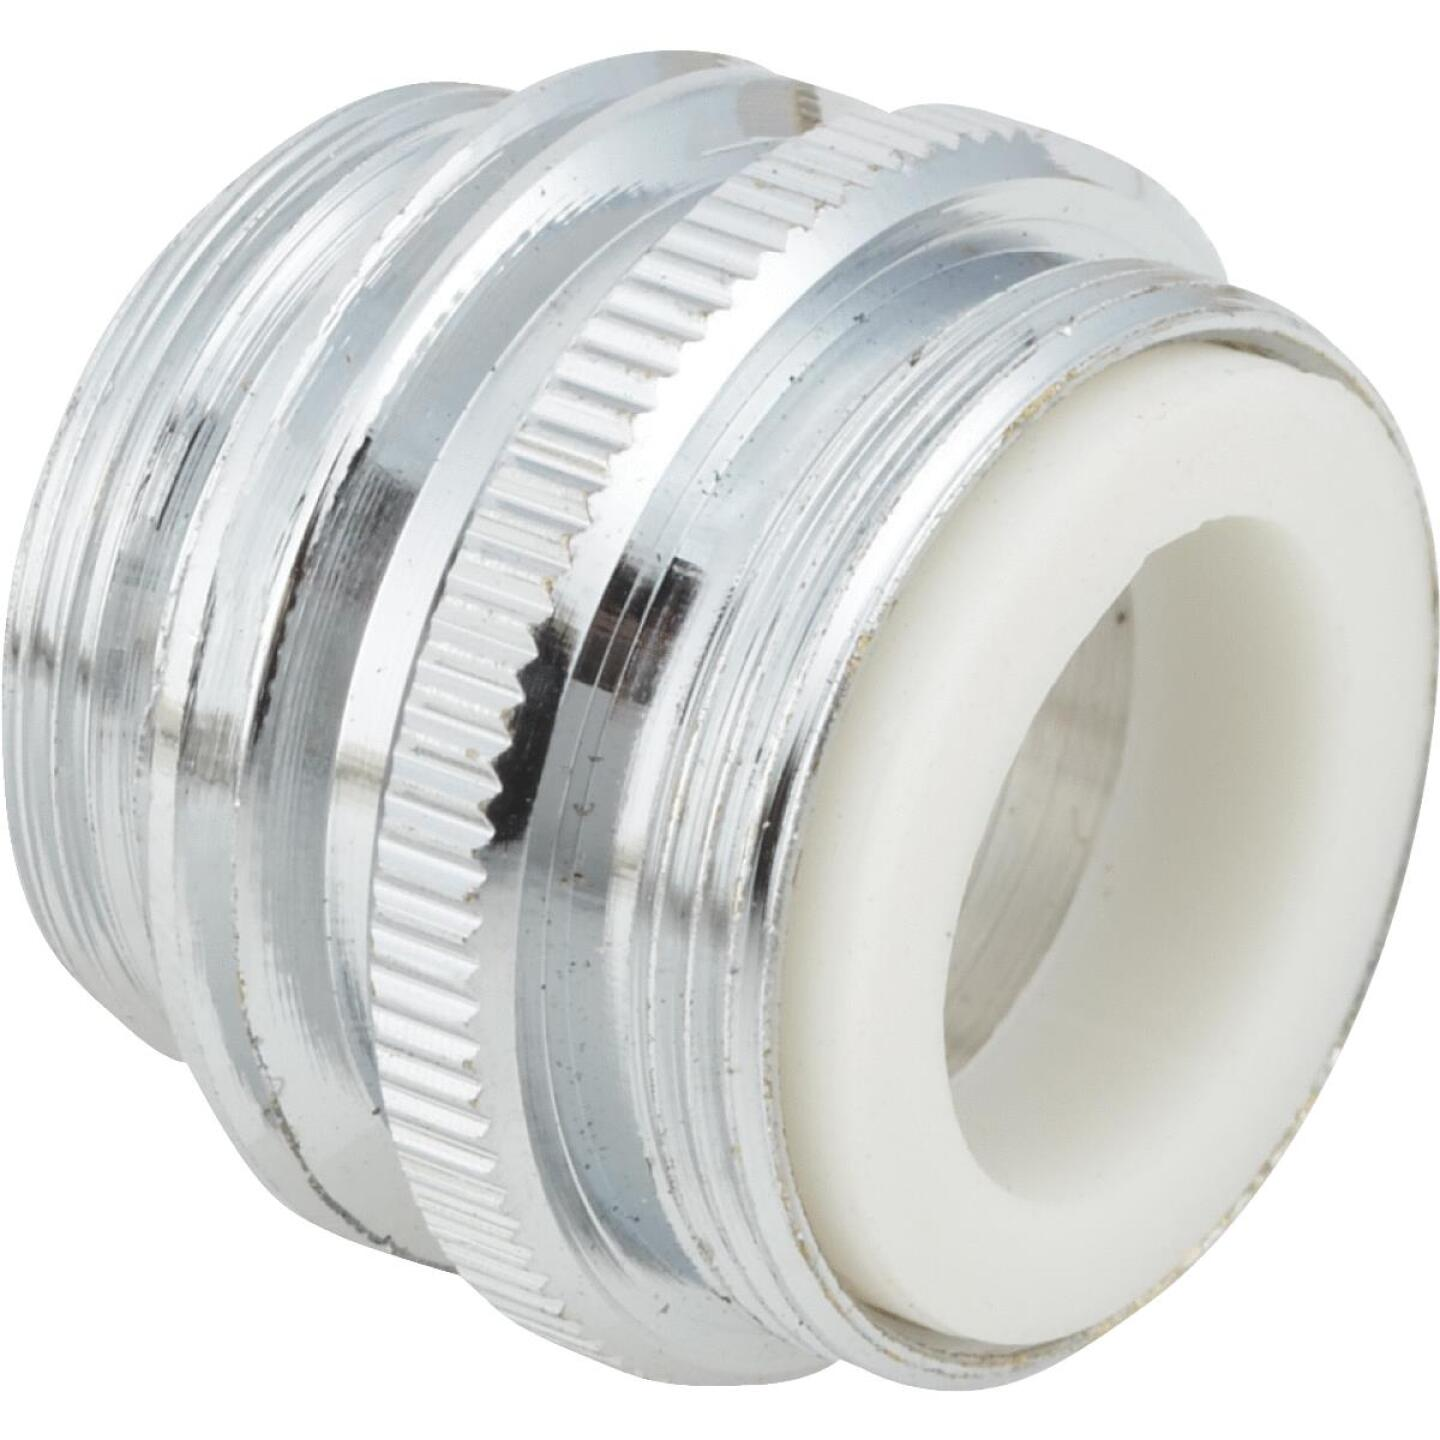 "Do it 15/16"" Outside or 55/64"" Inside to 3/4"" Dual Thread Faucet Adapter, Low Lead Image 1"